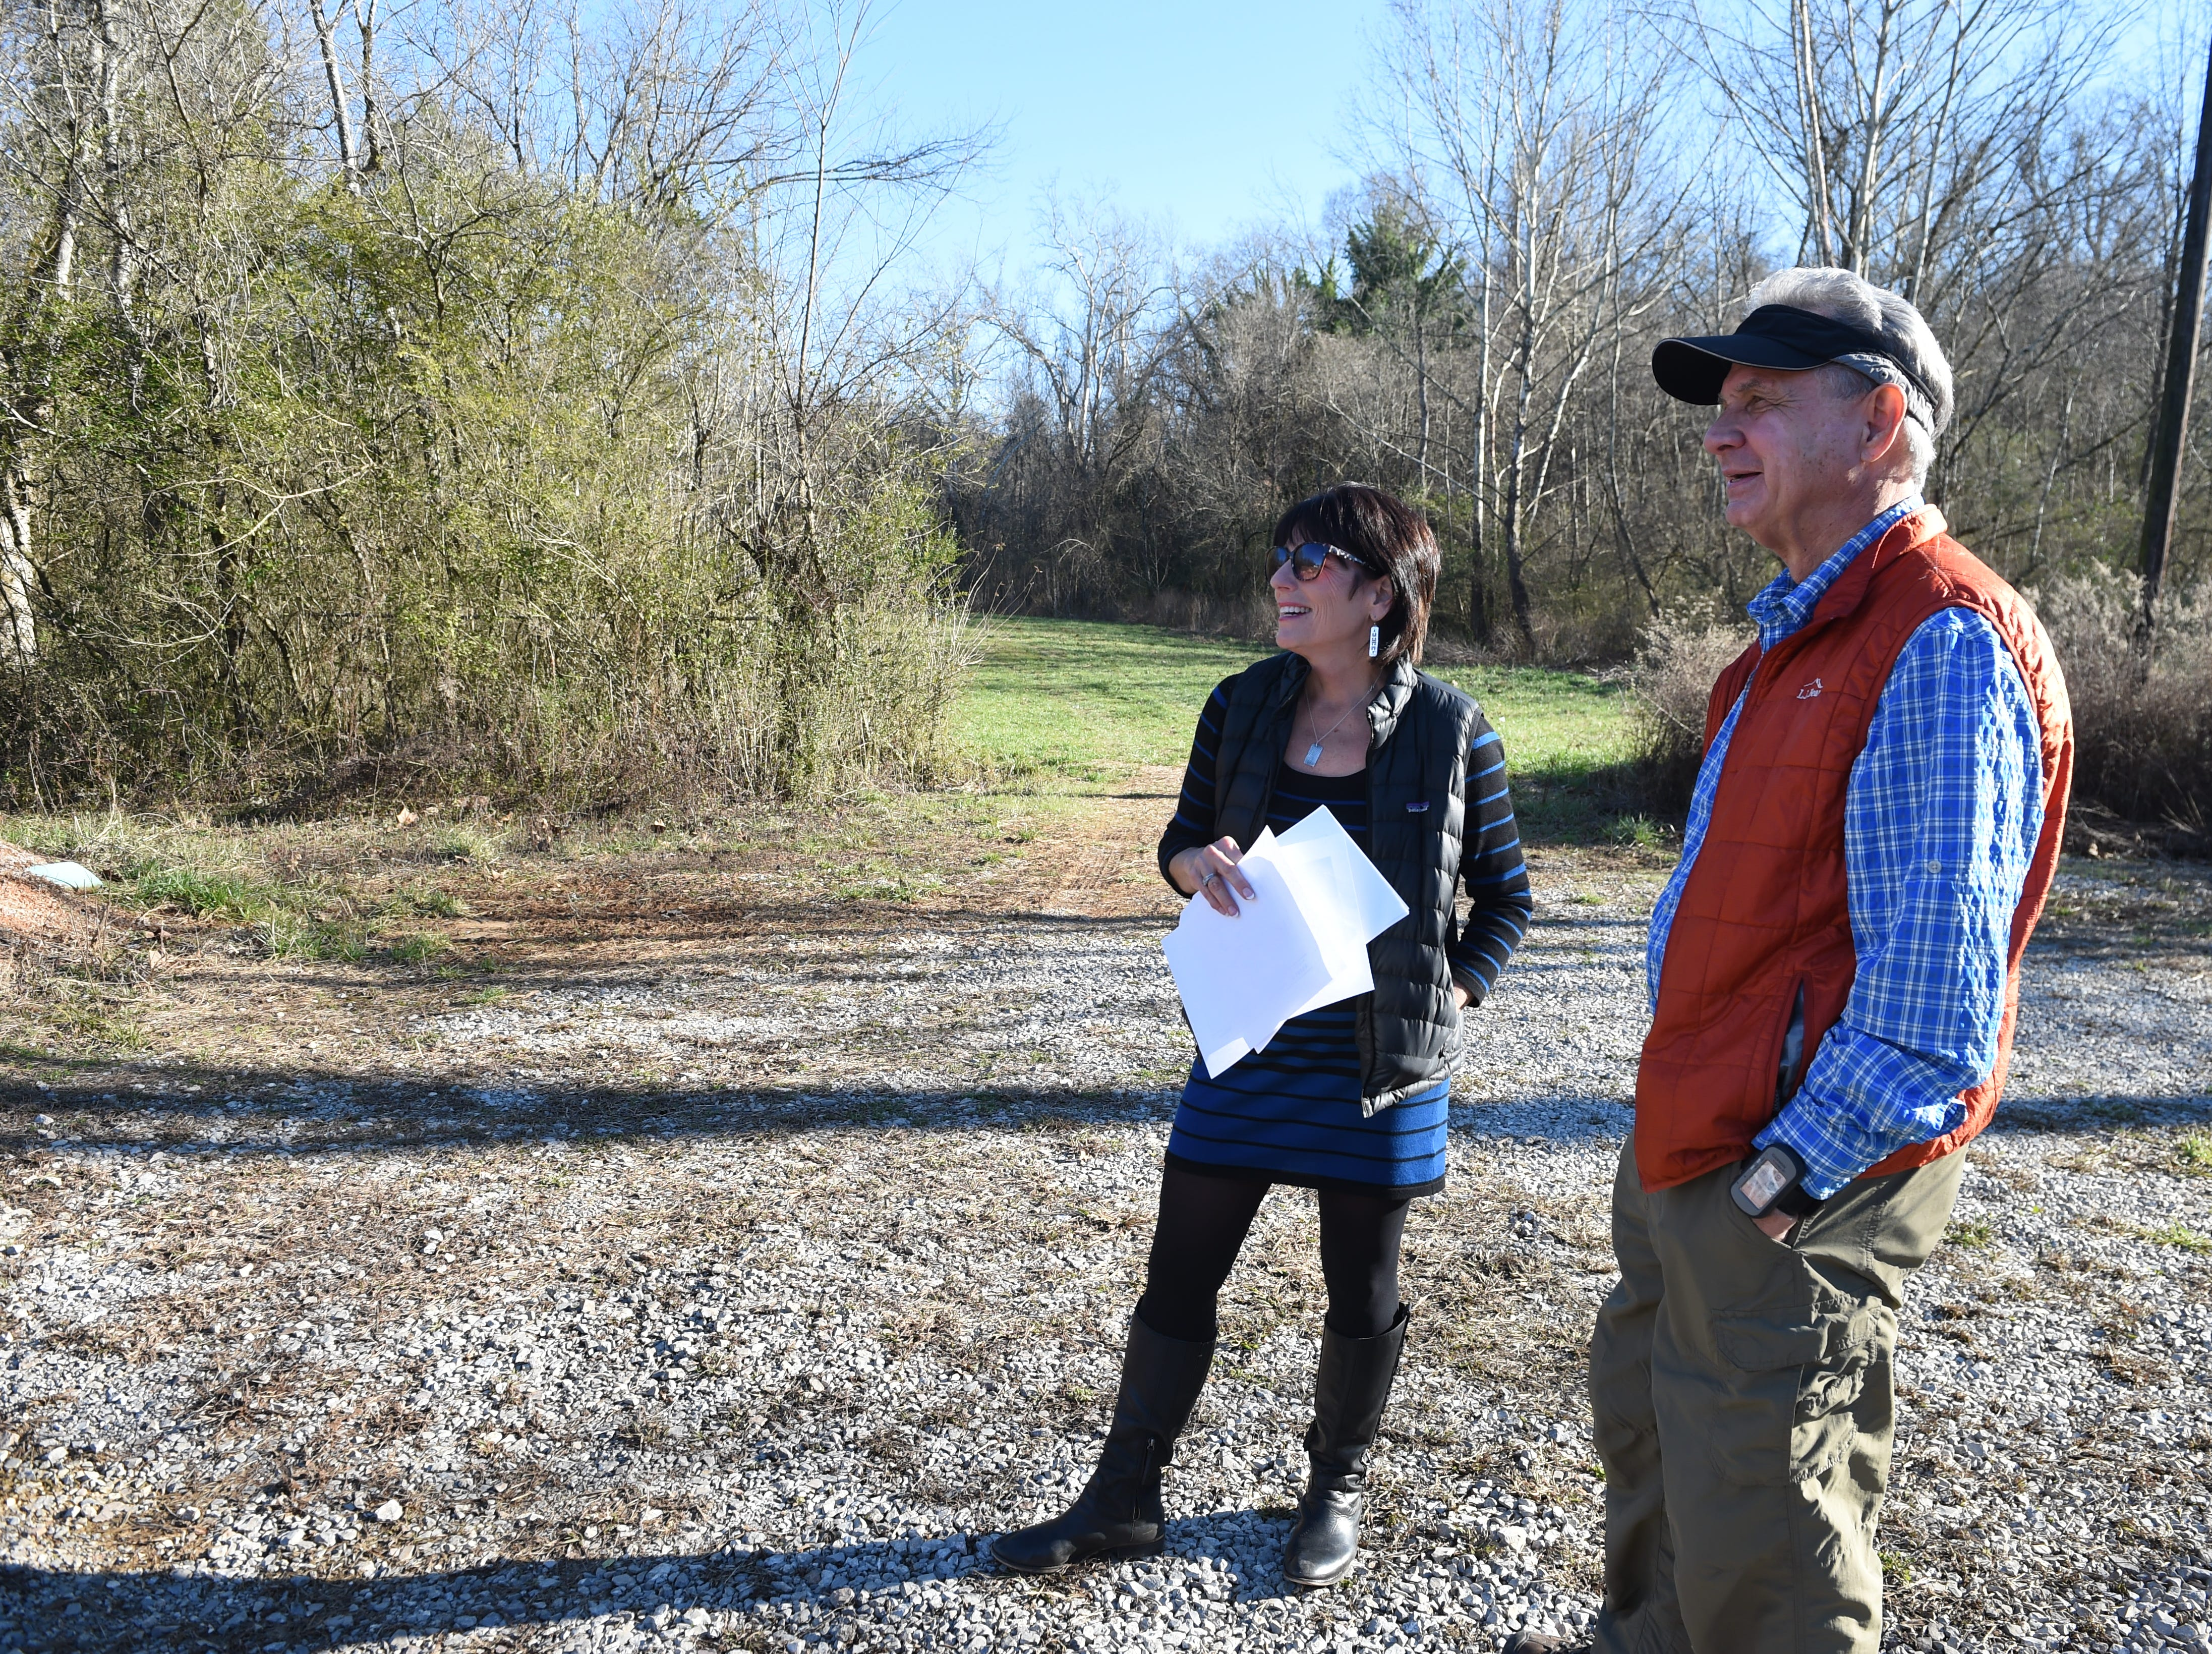 Legacy Parks Executive Director Carol Evans, left, shows board member Will Skelton around the Wood property at 1516 Taylor Rd., where six miles of new trails with be constructed, Thursday, Jan. 14, 2016. The Legacy Parks Foundation celebrated its 10th year anniversary in 2015 with a long list of achievements aimed at preserving land - and water - for public access. Since its origin, Legacy Parks has conserved more than 1,000 acres of forest and farmland and added nearly 500 acres of parkland in and around Knoxville.